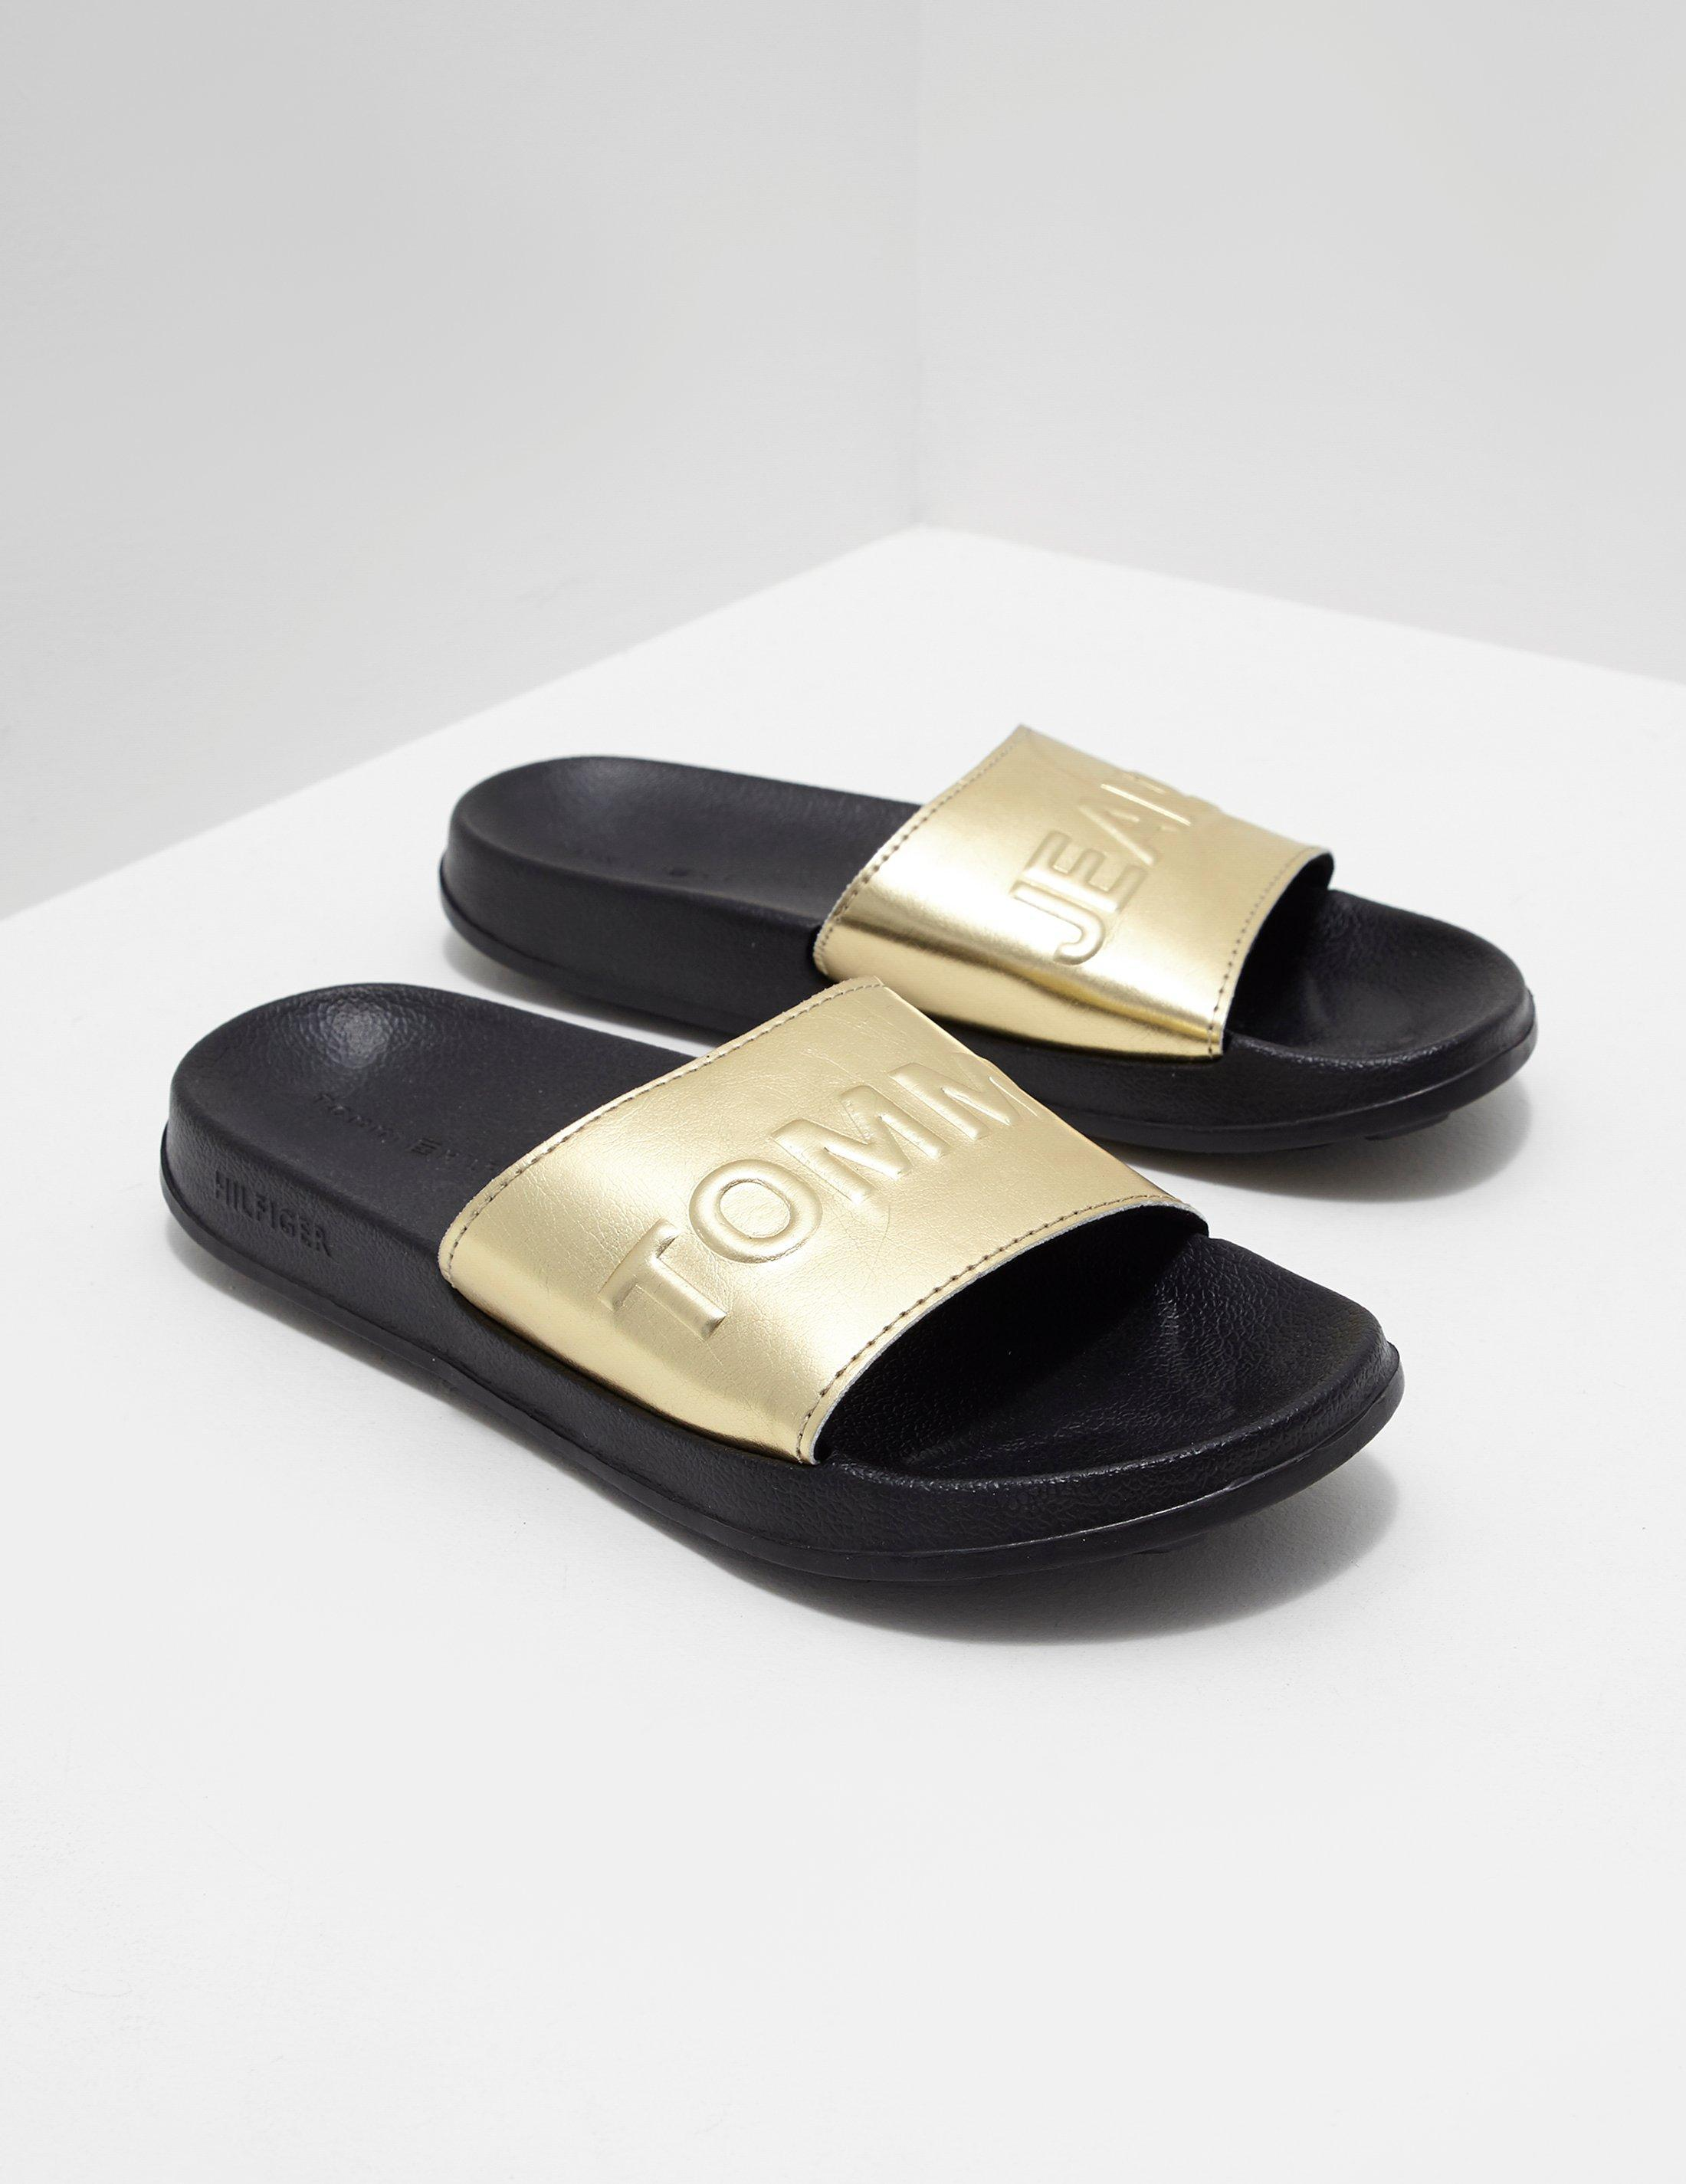 5653354811e2 Lyst - Tommy Hilfiger Womens Metallic Pool Slides Gold in Metallic